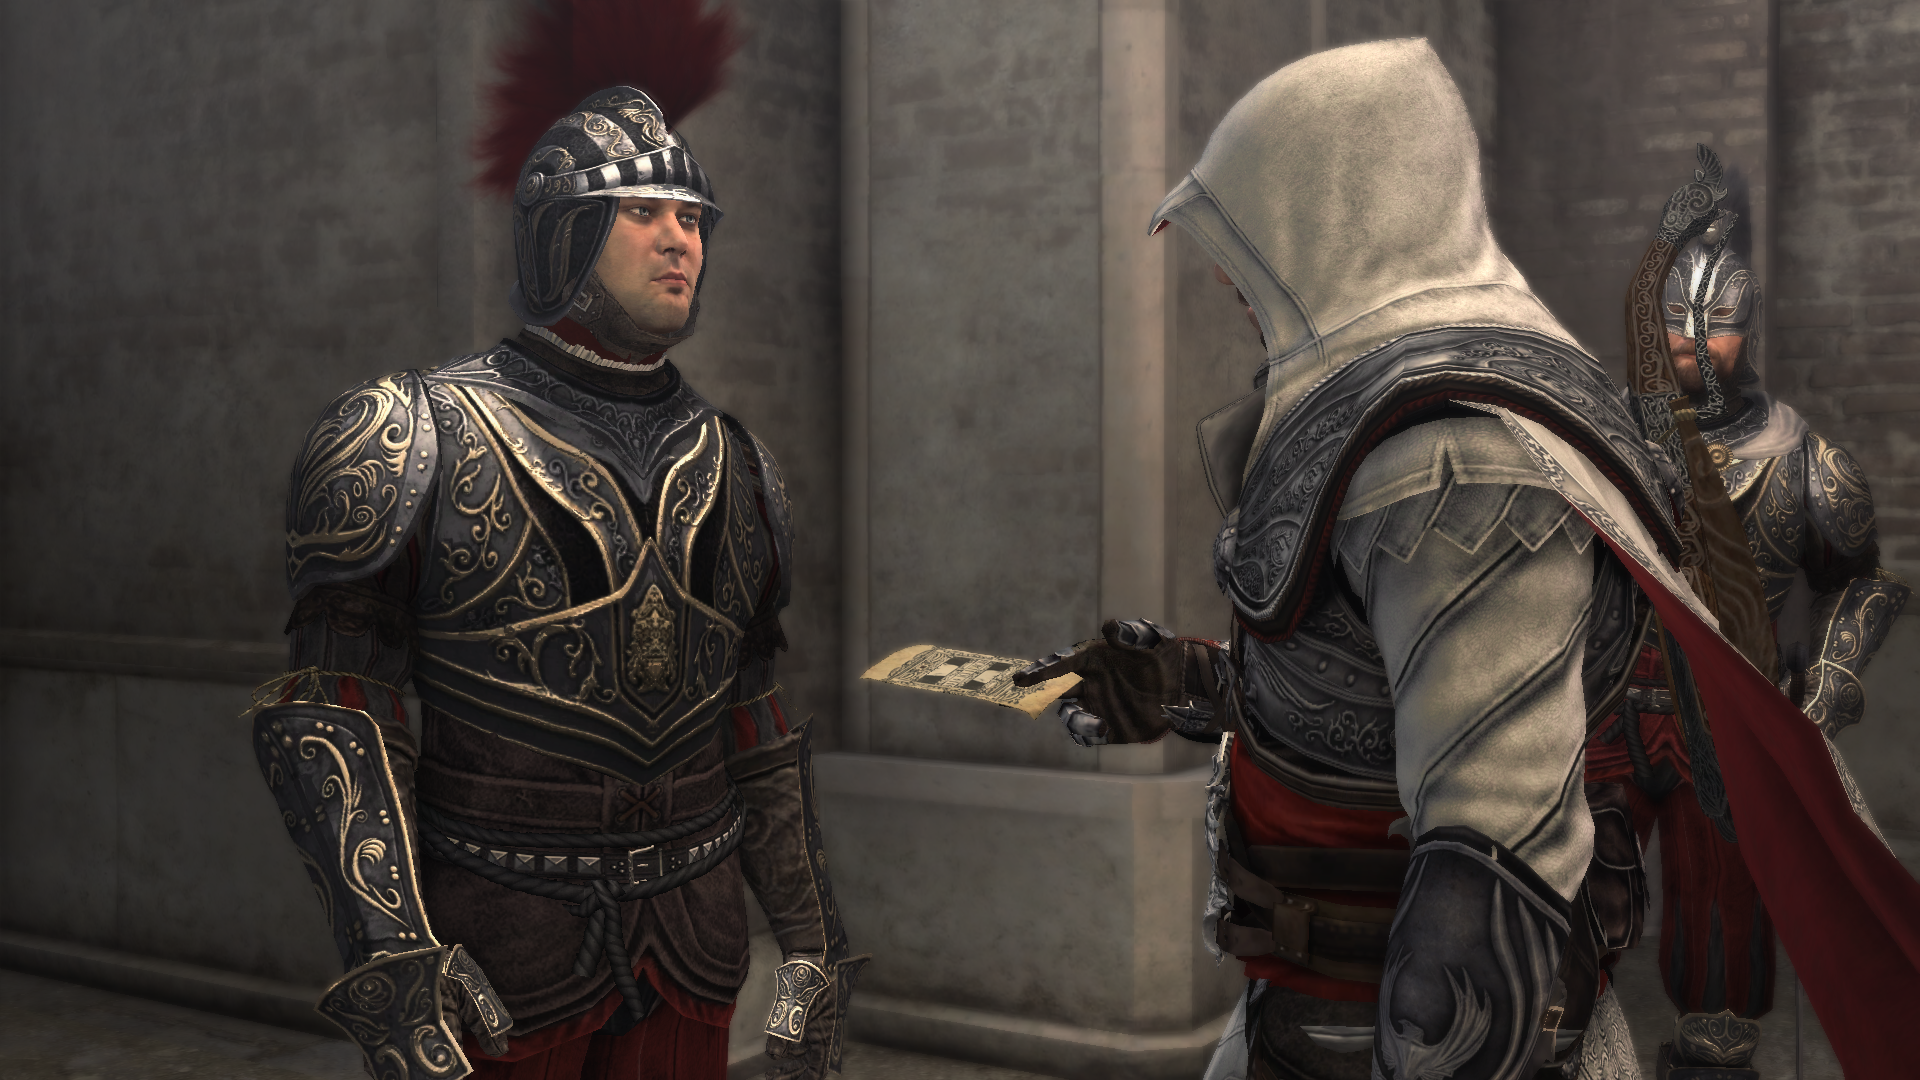 Image The Ezio Auditore Affair 2 Png Assassin S Creed